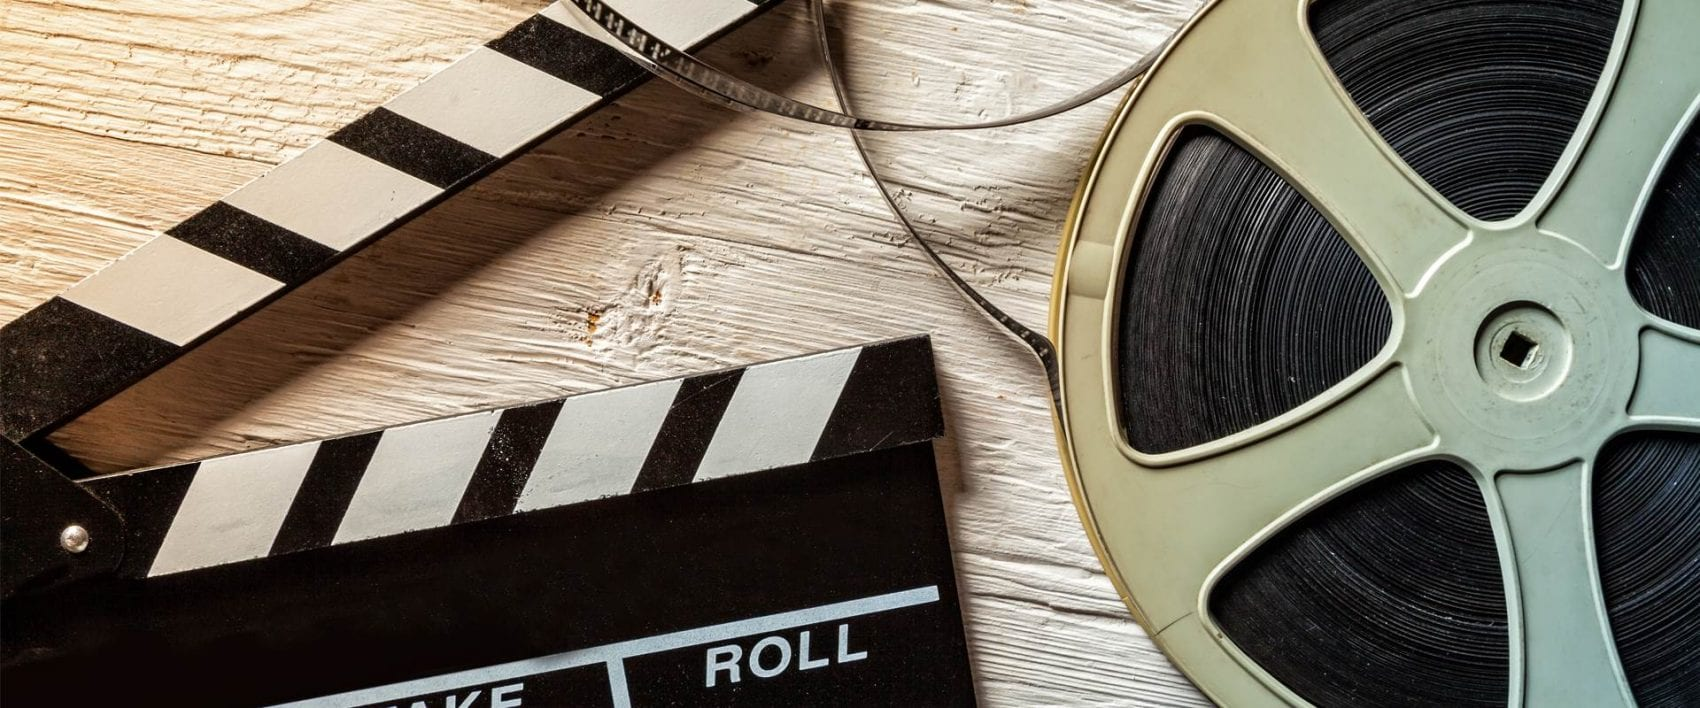 5 Movies To Watch With Your Senior Family Members